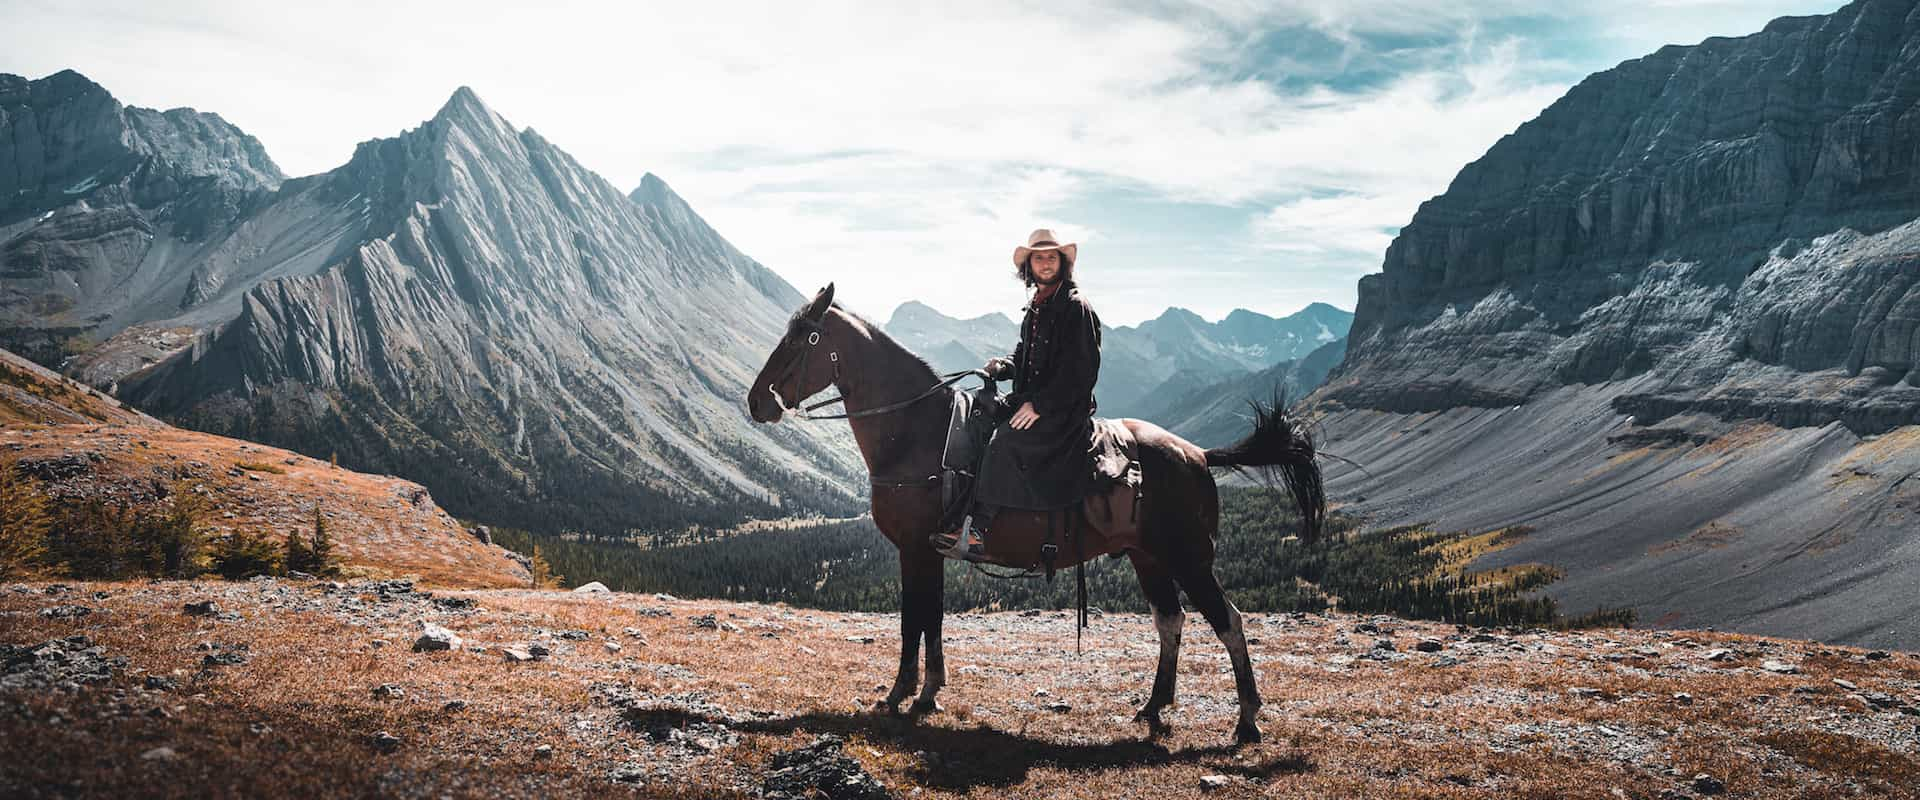 Ride to the summit at Allenby Pass with Banff Trail Riders in the Canadian Rockies